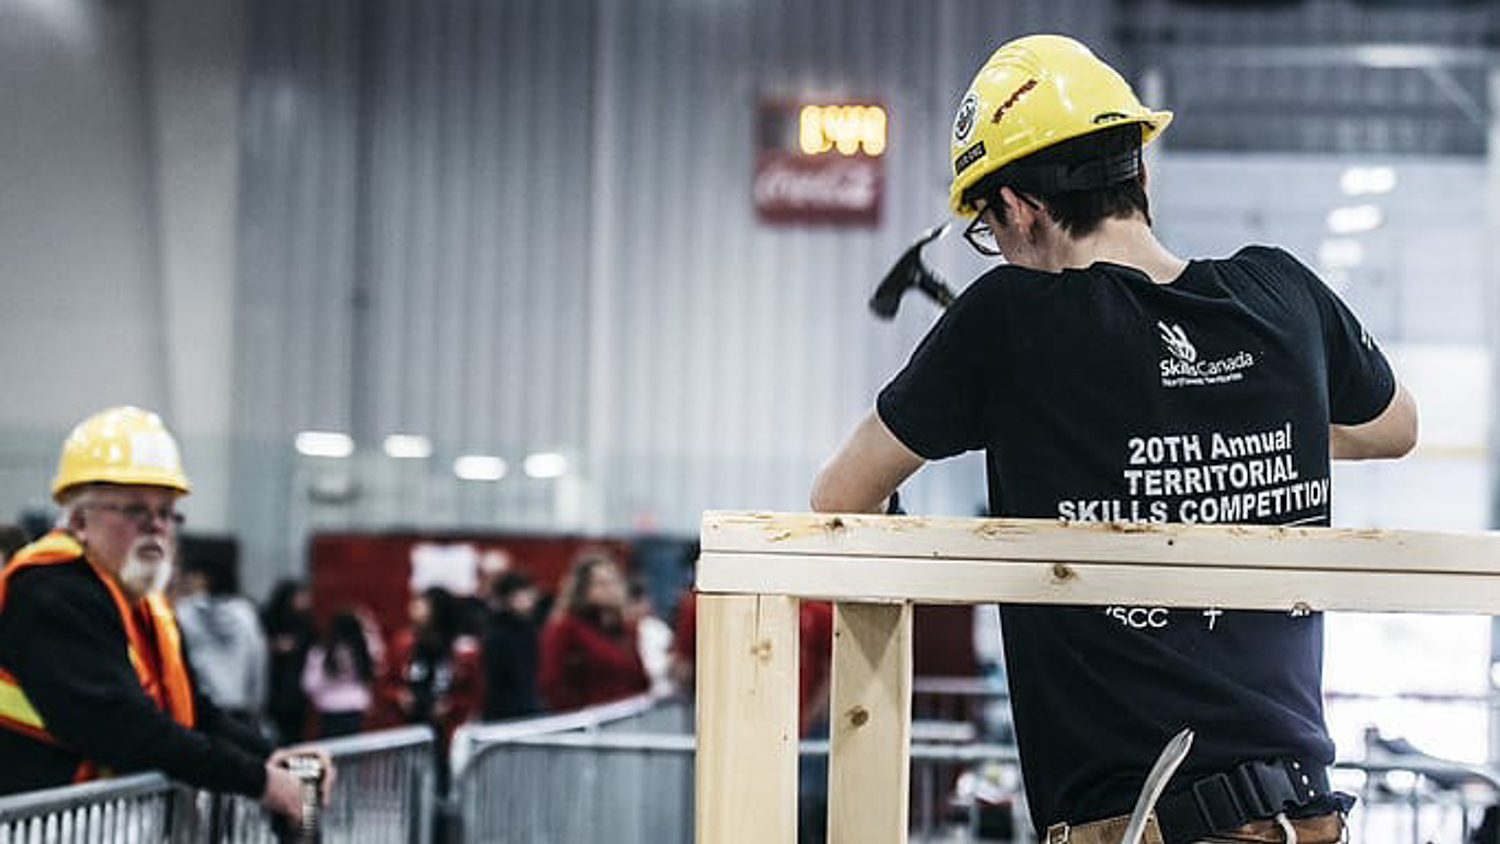 A competitor at the 2018 Skills Canada NWT territorial skills competition